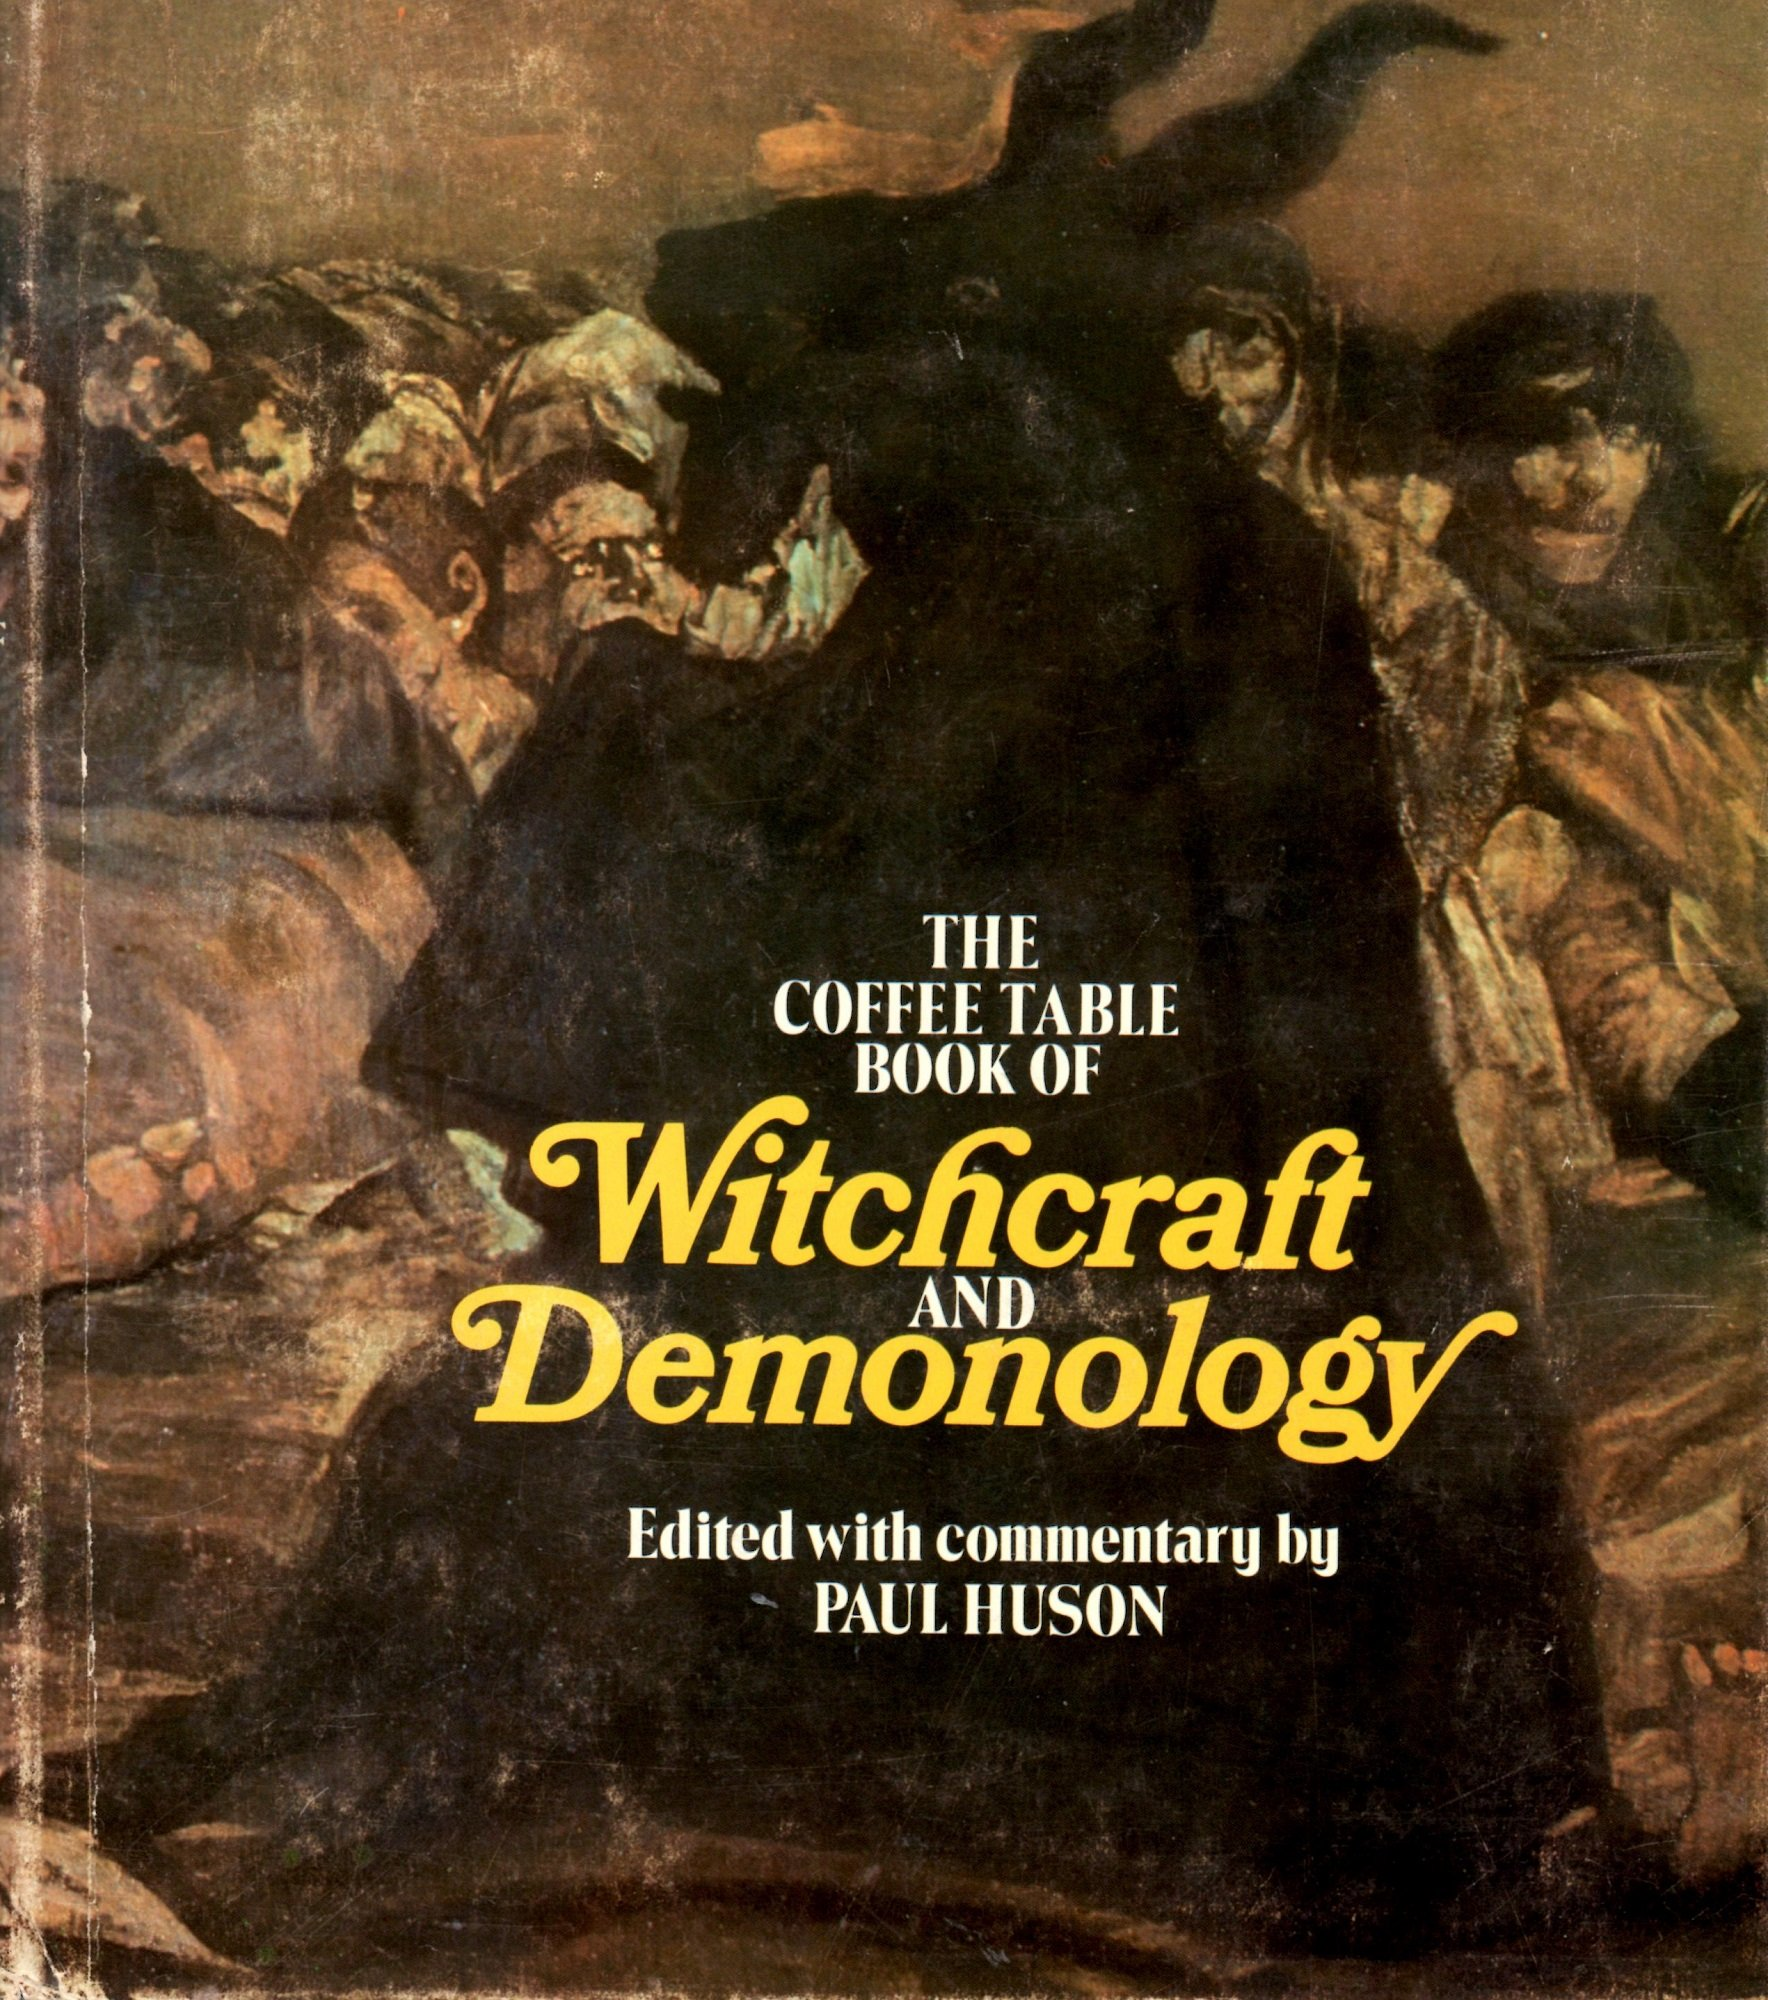 the coffee table book of witchcraft and demonology paul huson